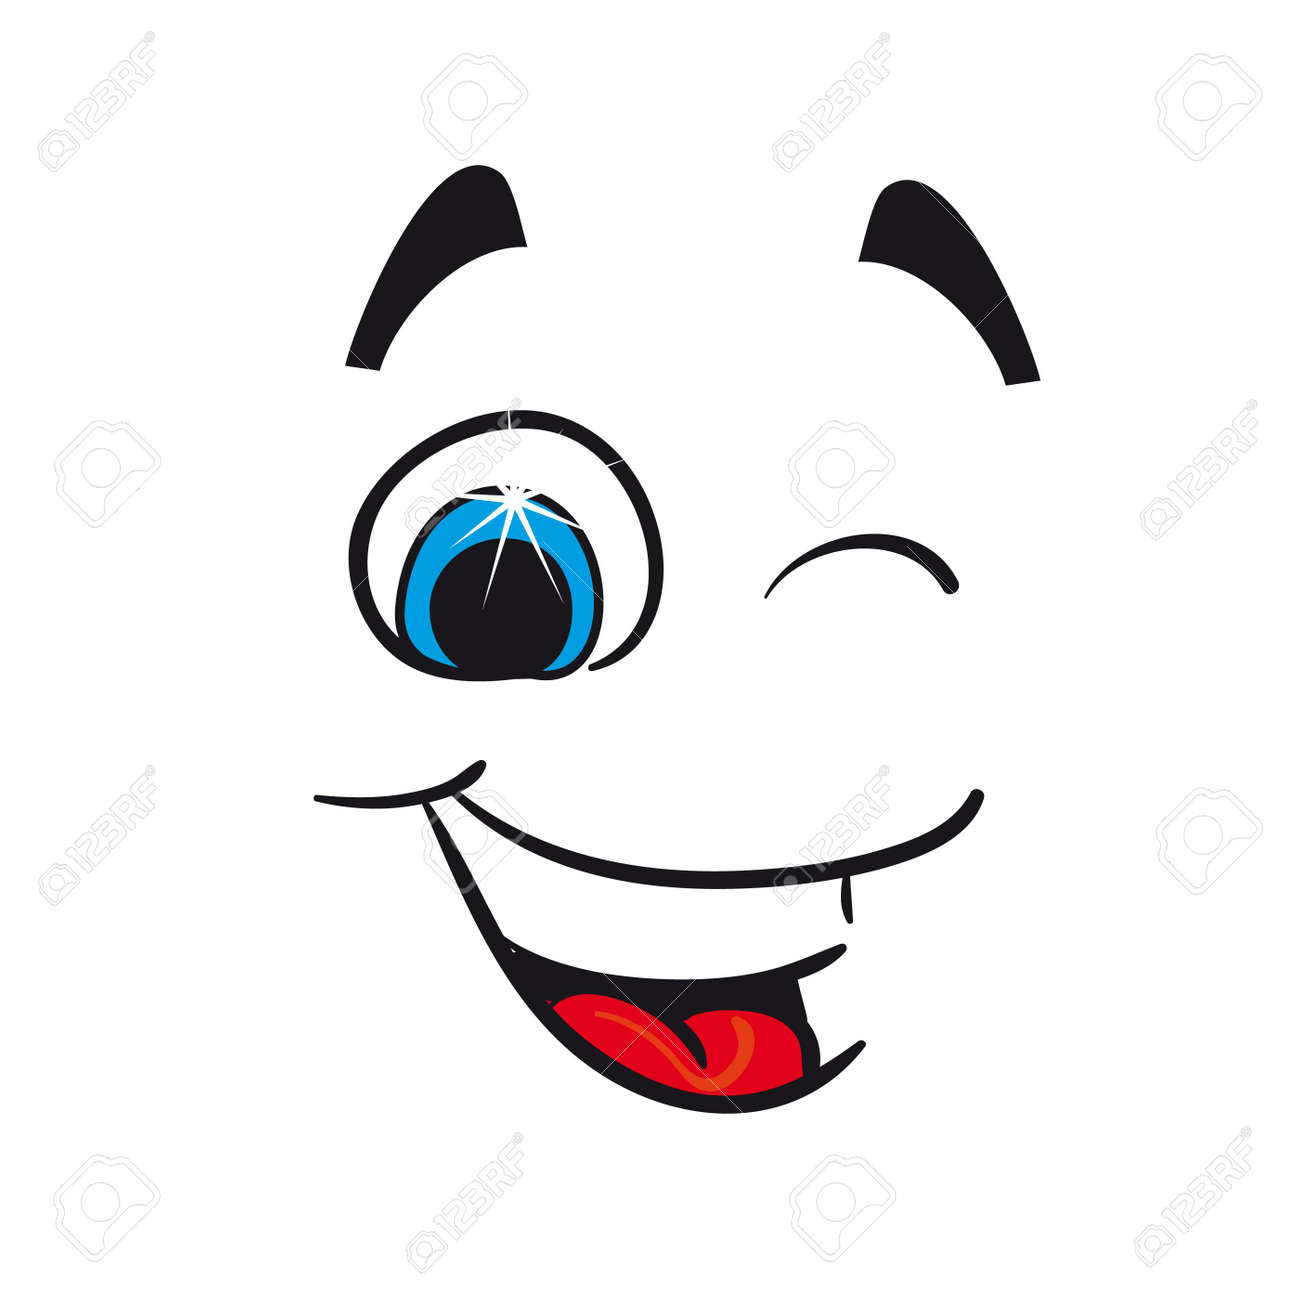 Cheerful caricature on a white background Stock Vector - 15603131